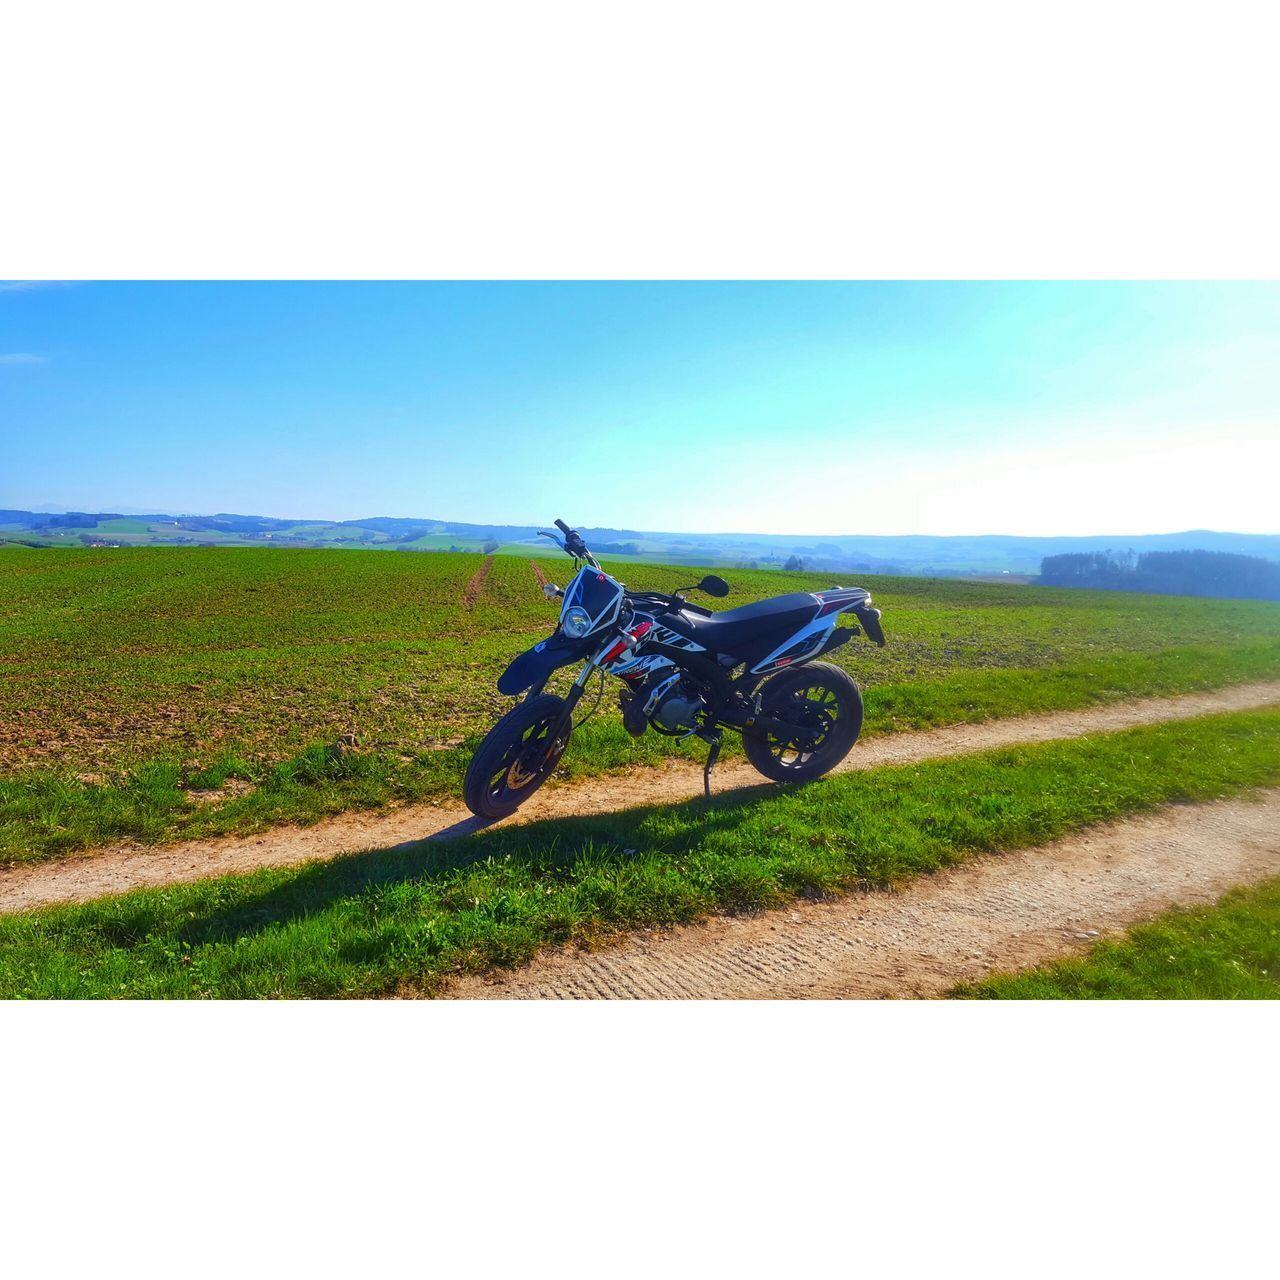 transportation, land vehicle, mode of transport, field, landscape, grass, motorcycle, horizon over land, day, off-road vehicle, sky, clear sky, outdoors, road, nature, real people, men, one person, people